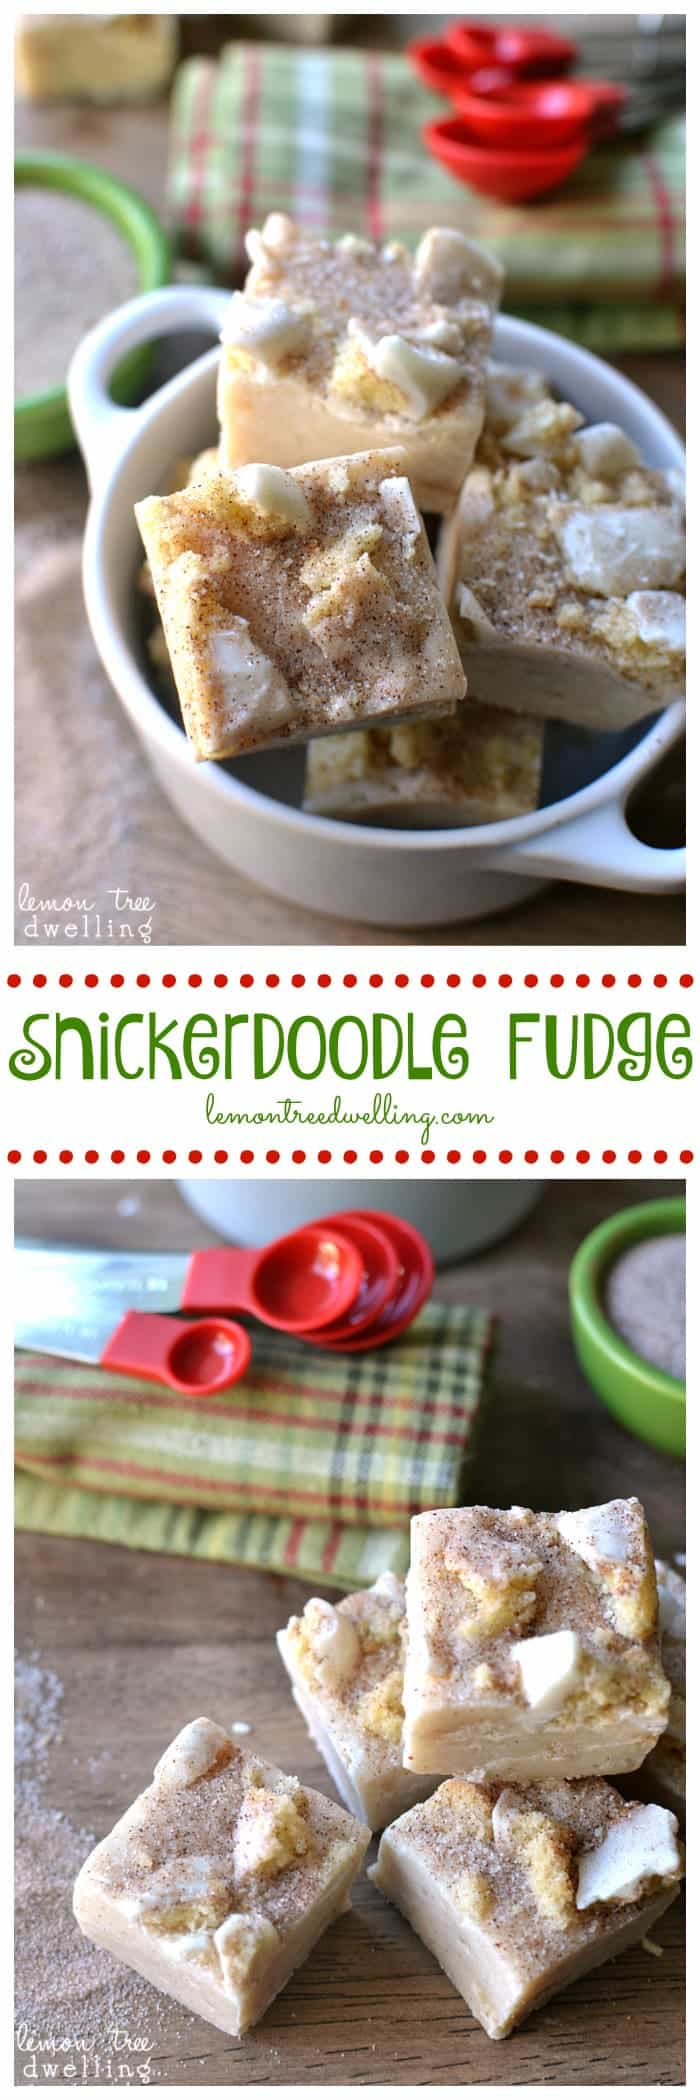 Snickerdoodle Fudge that tastes just like REAL snickerdoodle cookies! So rich and full of cinnamon, this quick and easy fudge recipe is a delicious treat!